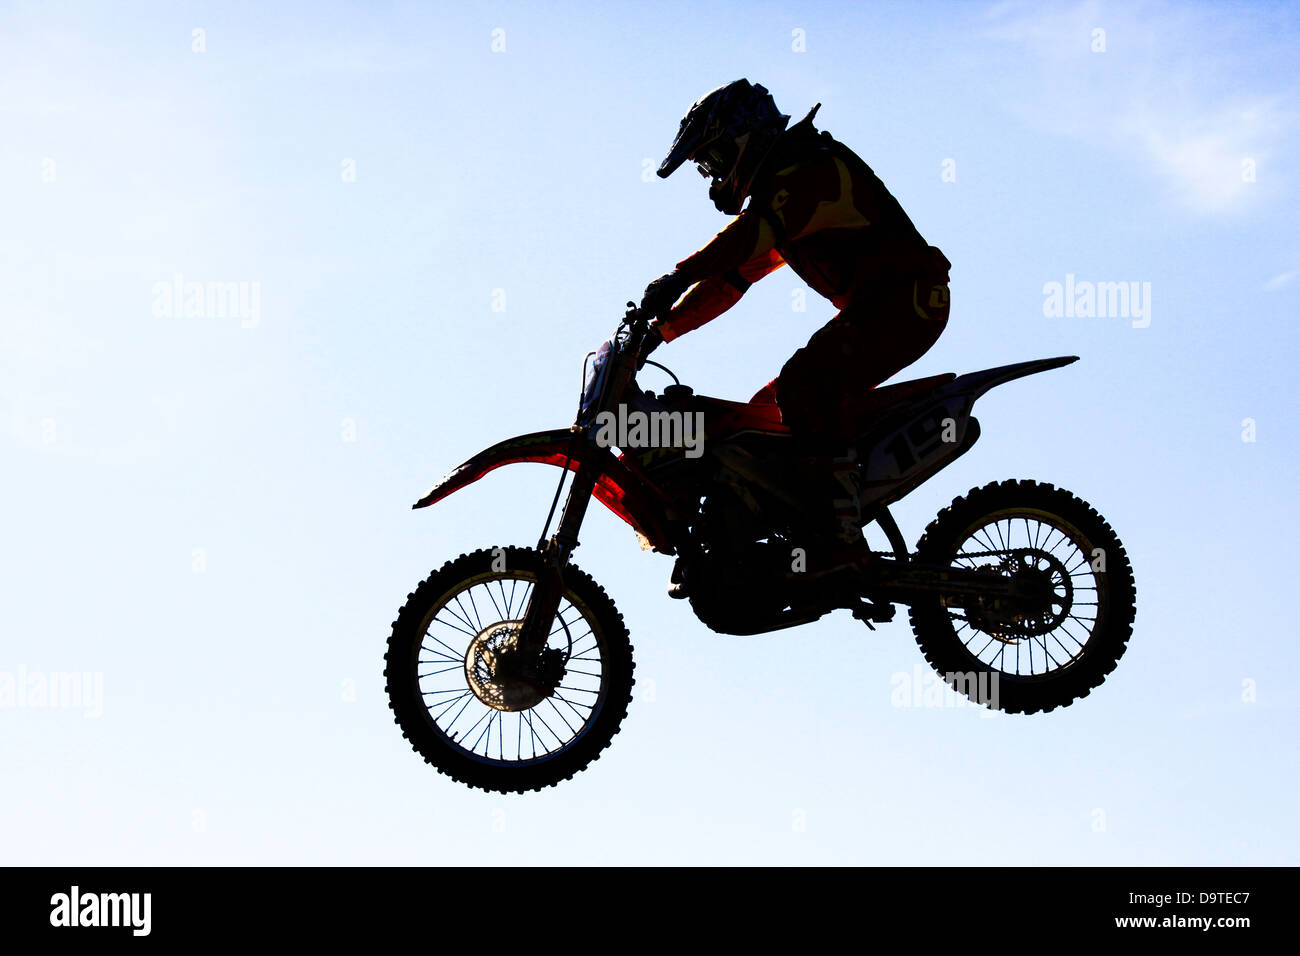 Airtime rider Whitby Motocross, North Yorkshire - Stock Image